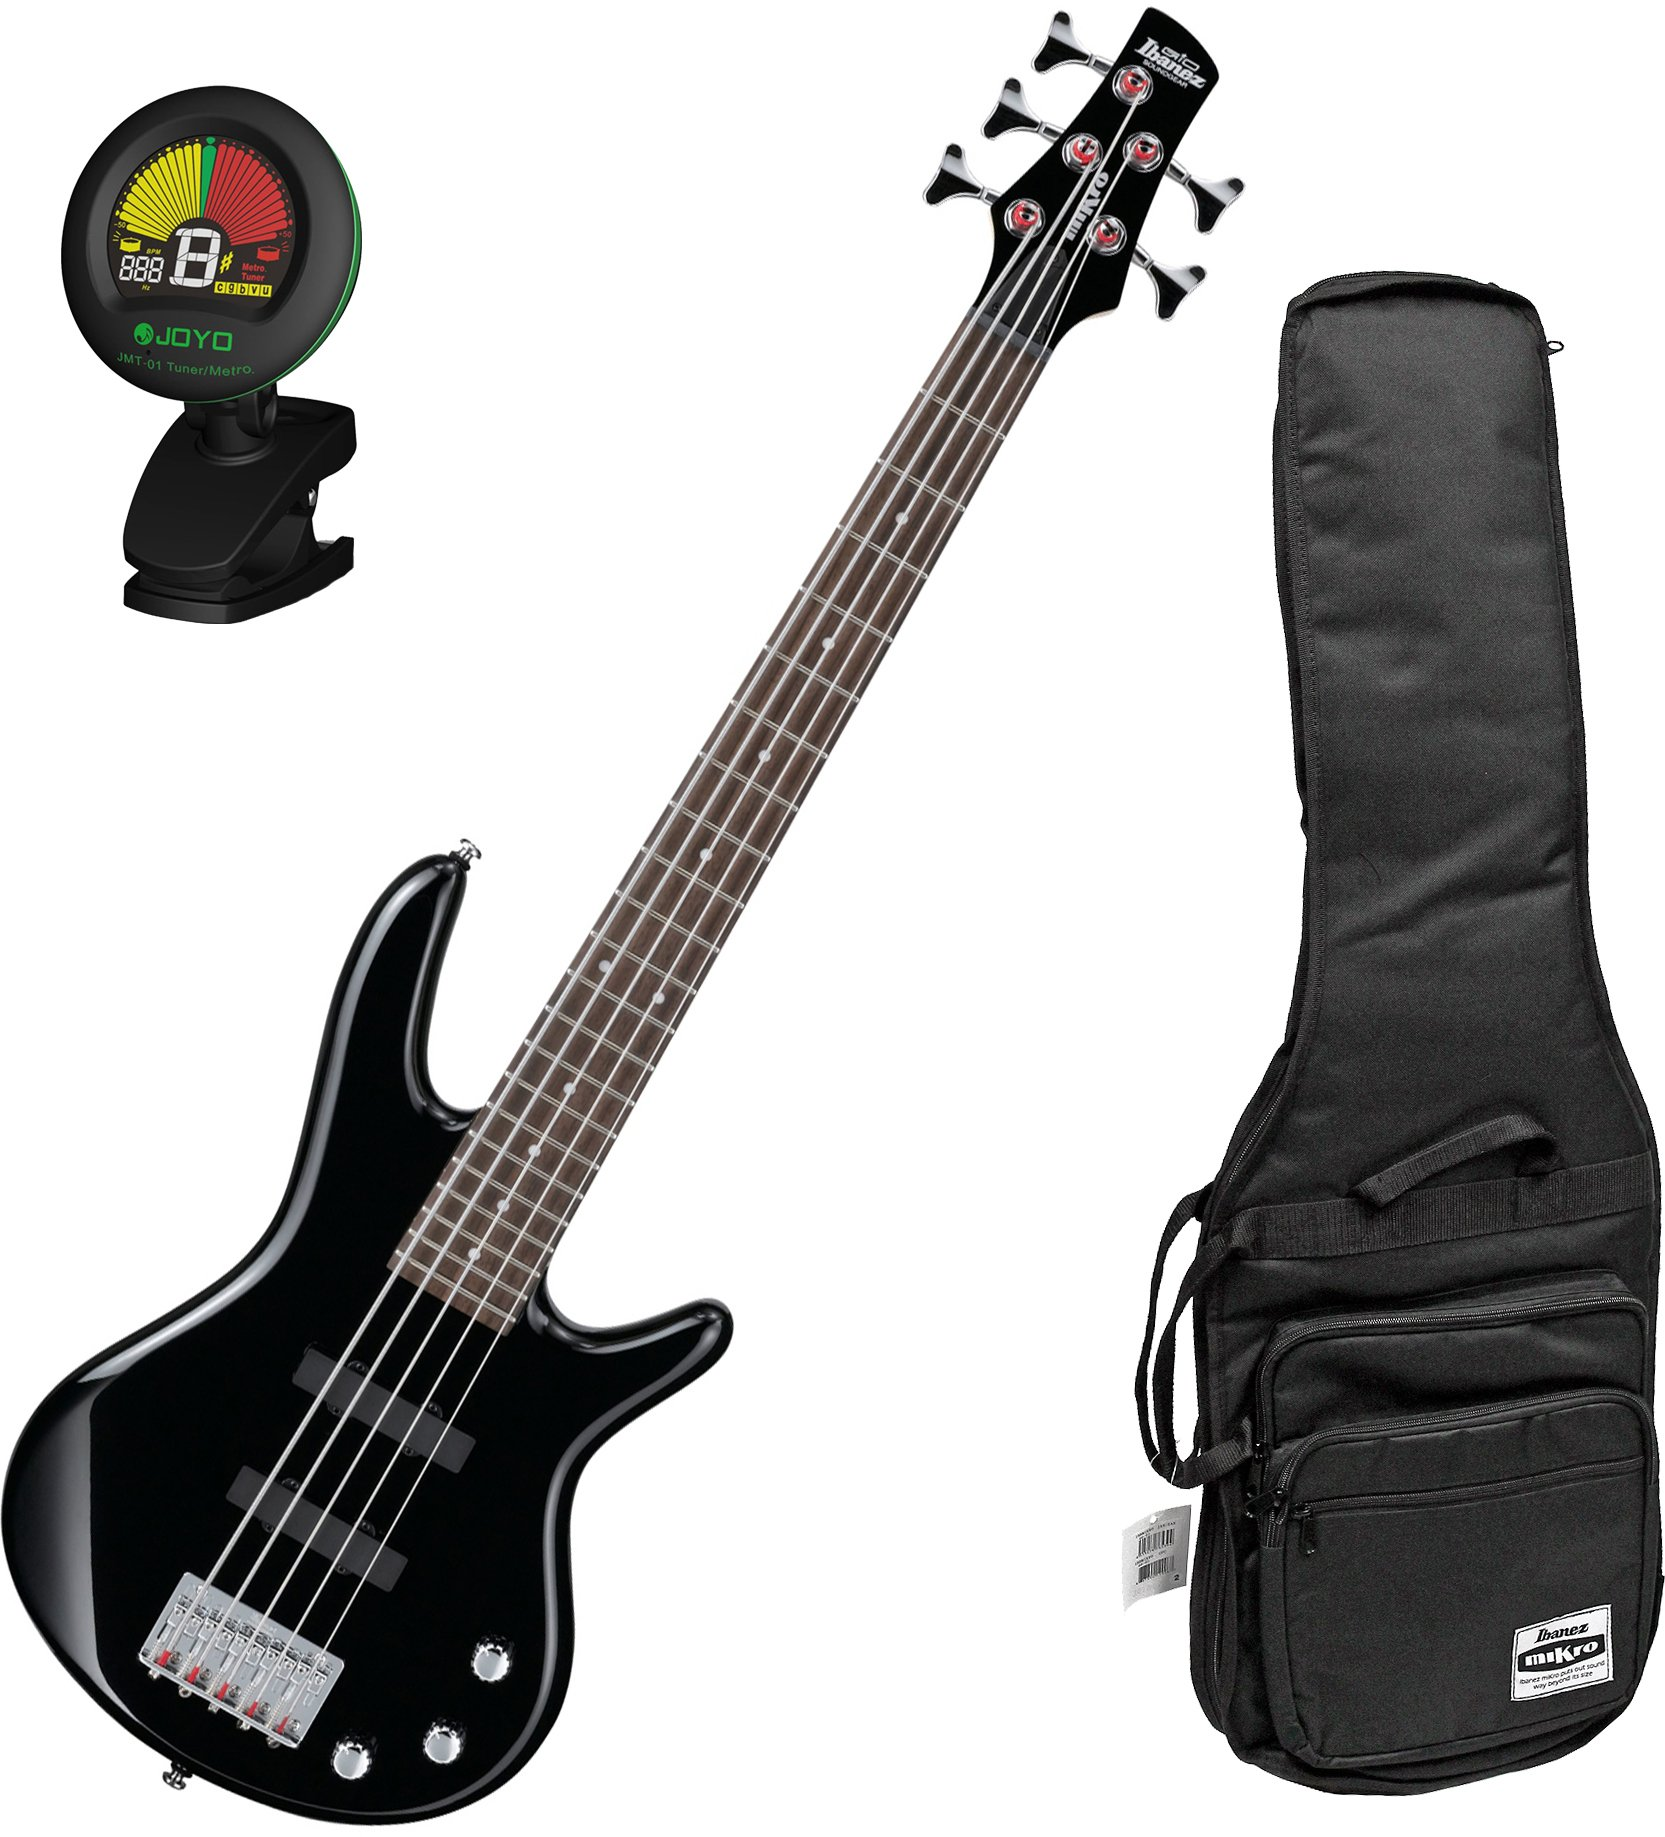 Ibanez GSRM25BK Black 5-String MIKRO Junior Bass Guitar w/ Free Ibanez Gig Bag and Tuner!